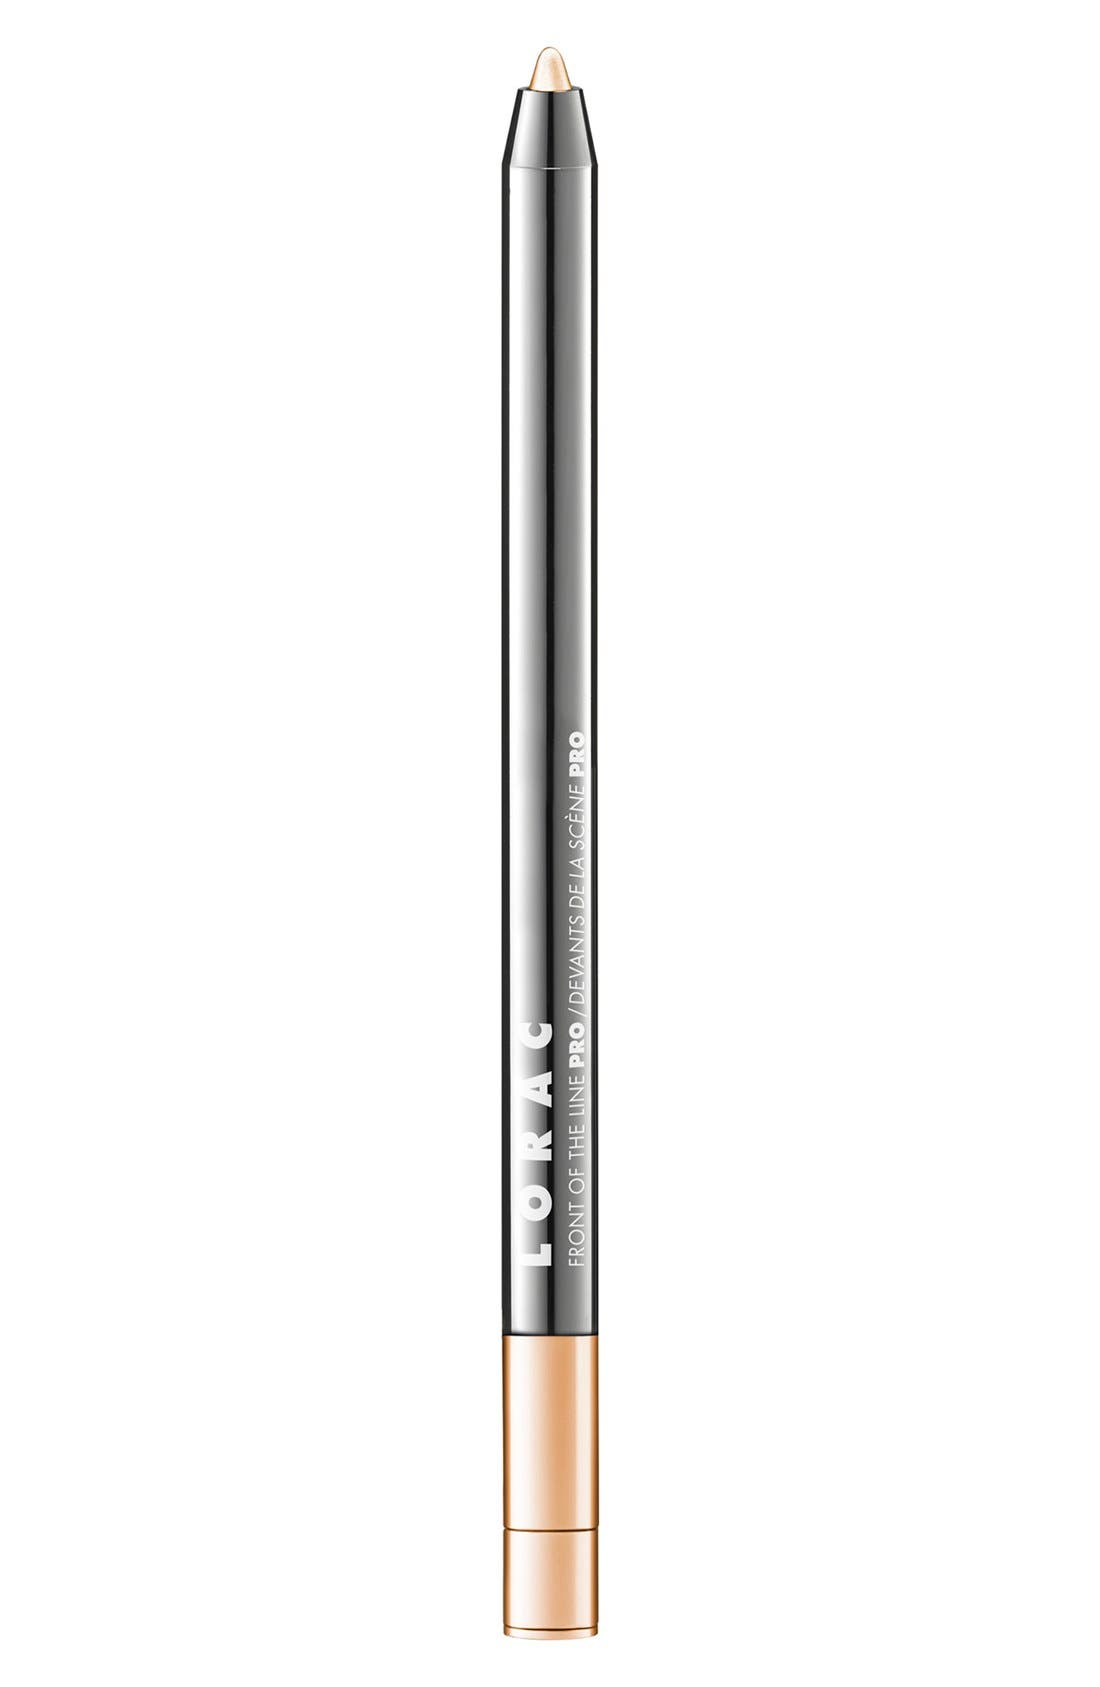 LORAC 'Front of the Line PRO' Eye Pencil